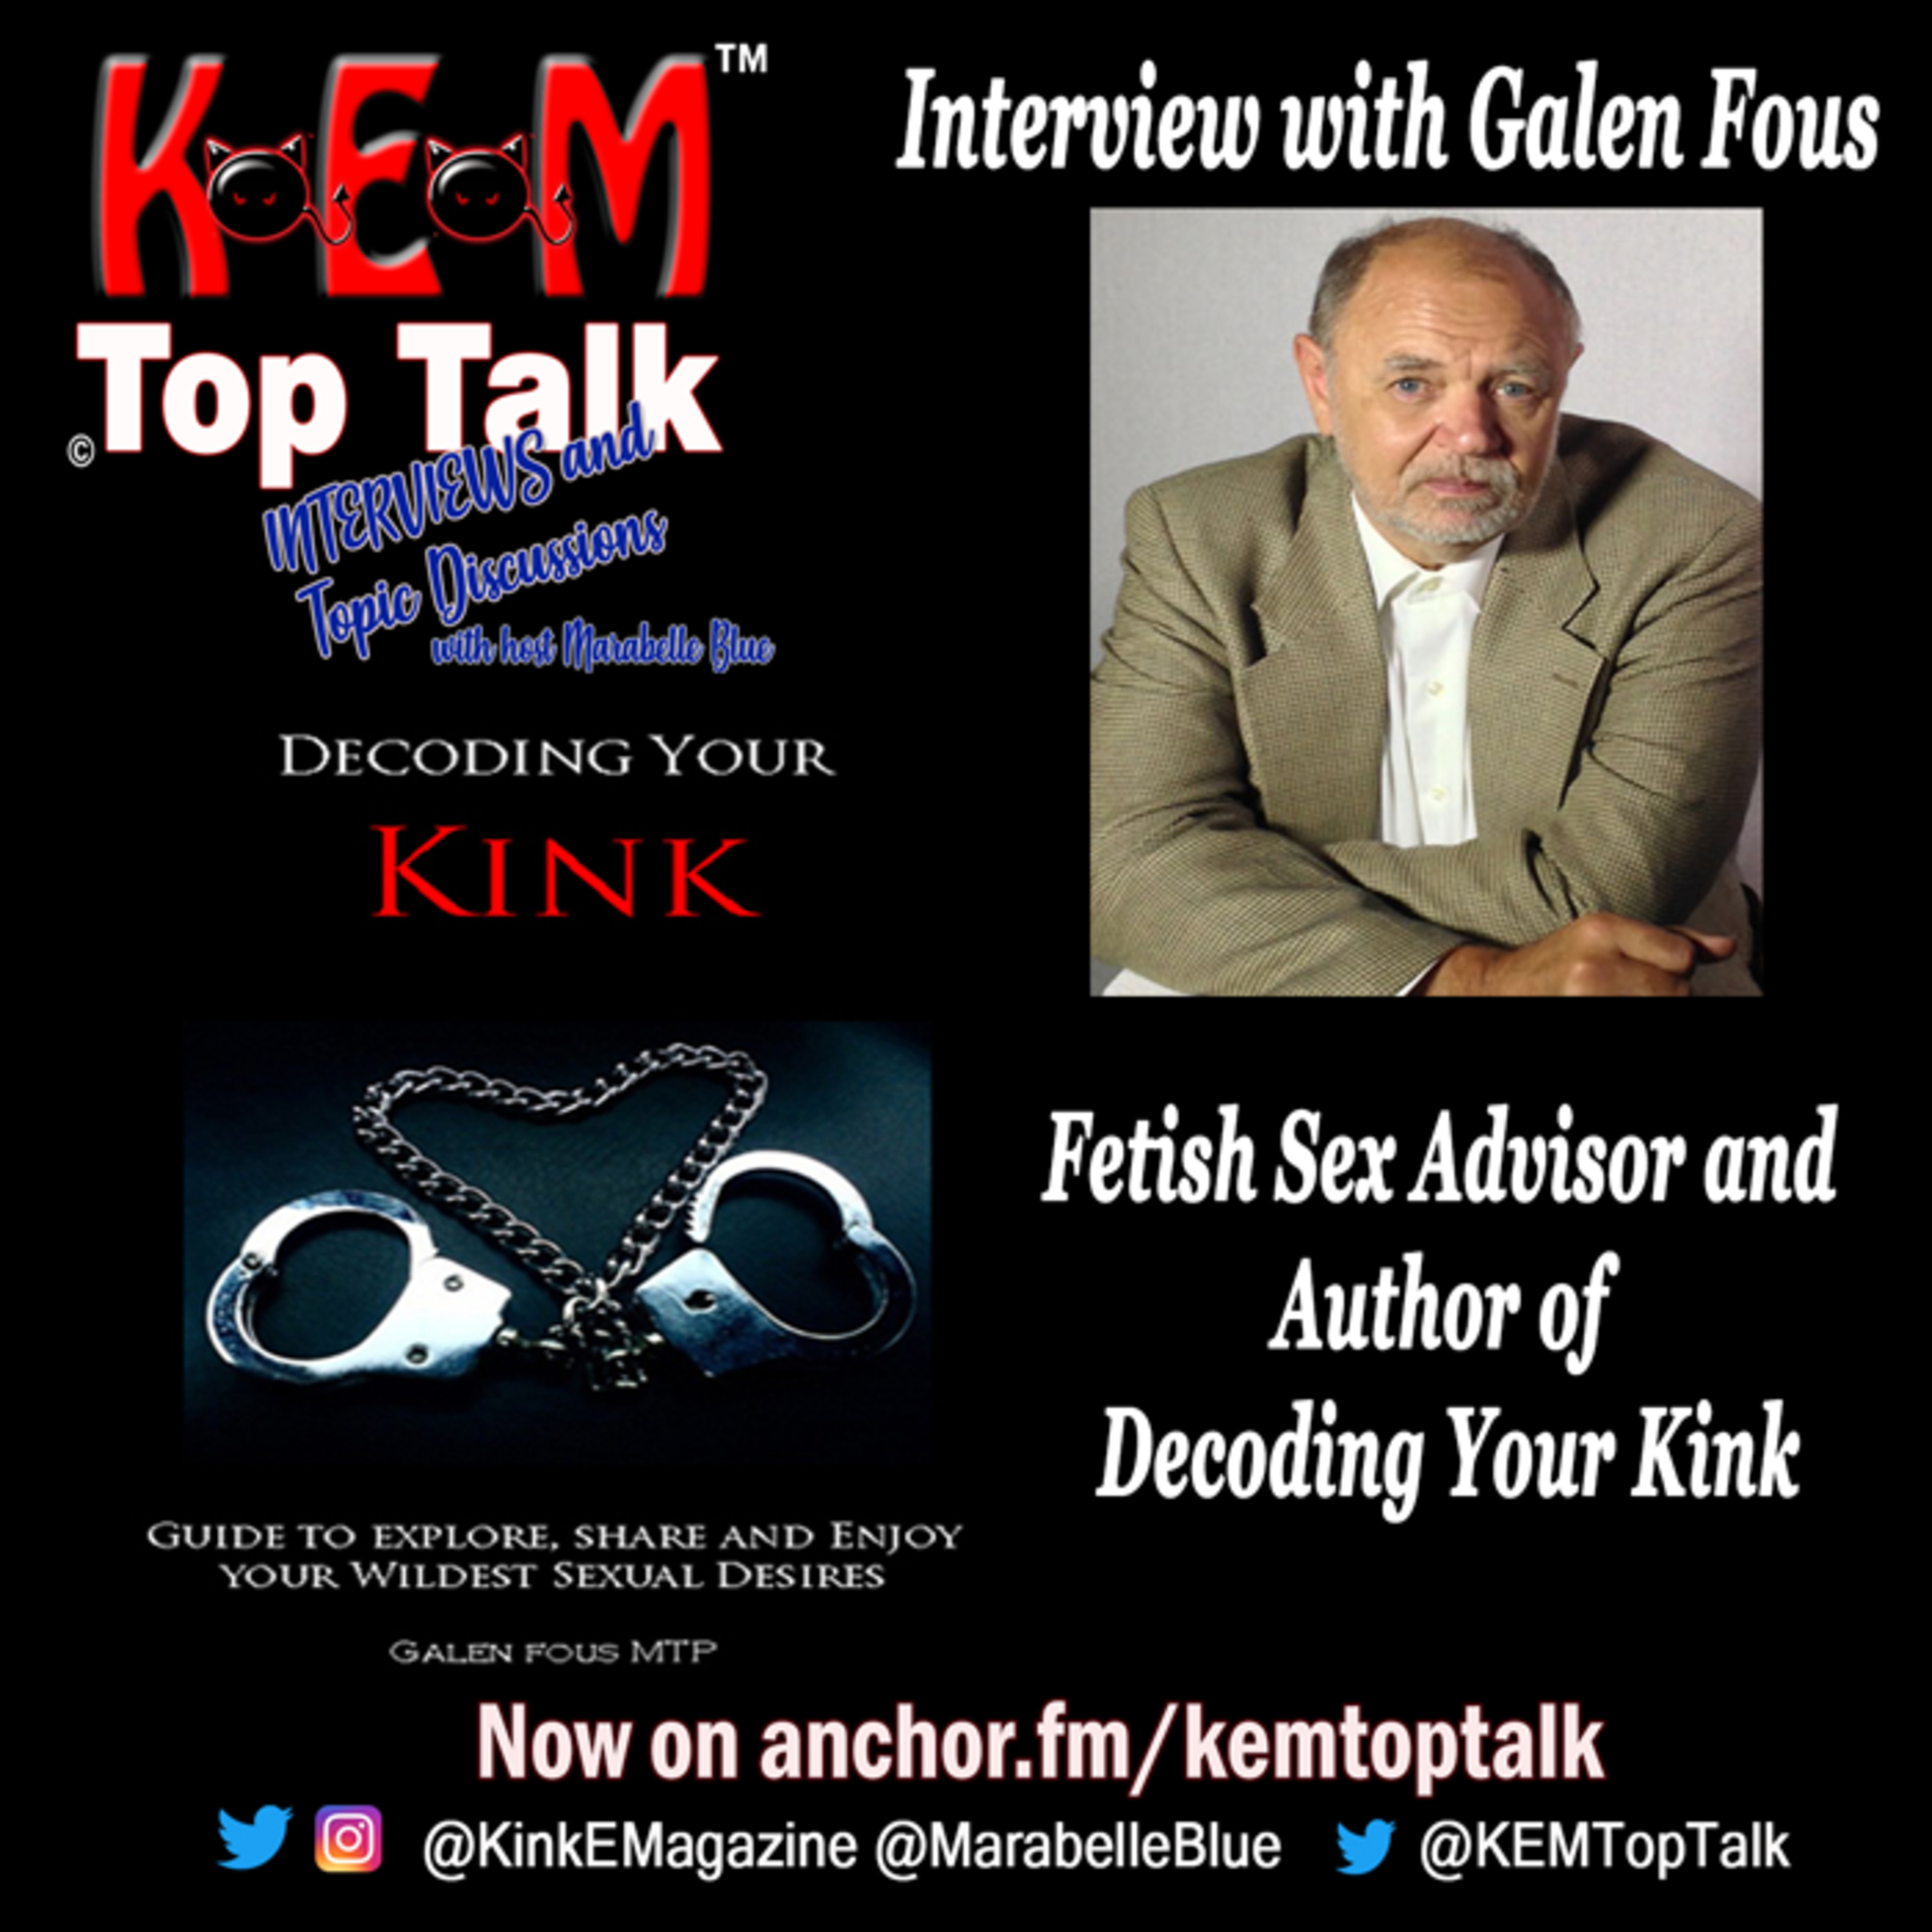 KEM TopTalk Interviews and Discussions with host Marabelle Blue The Best of the Best Interviews with Galen Fous Author of Decoding Your Kink